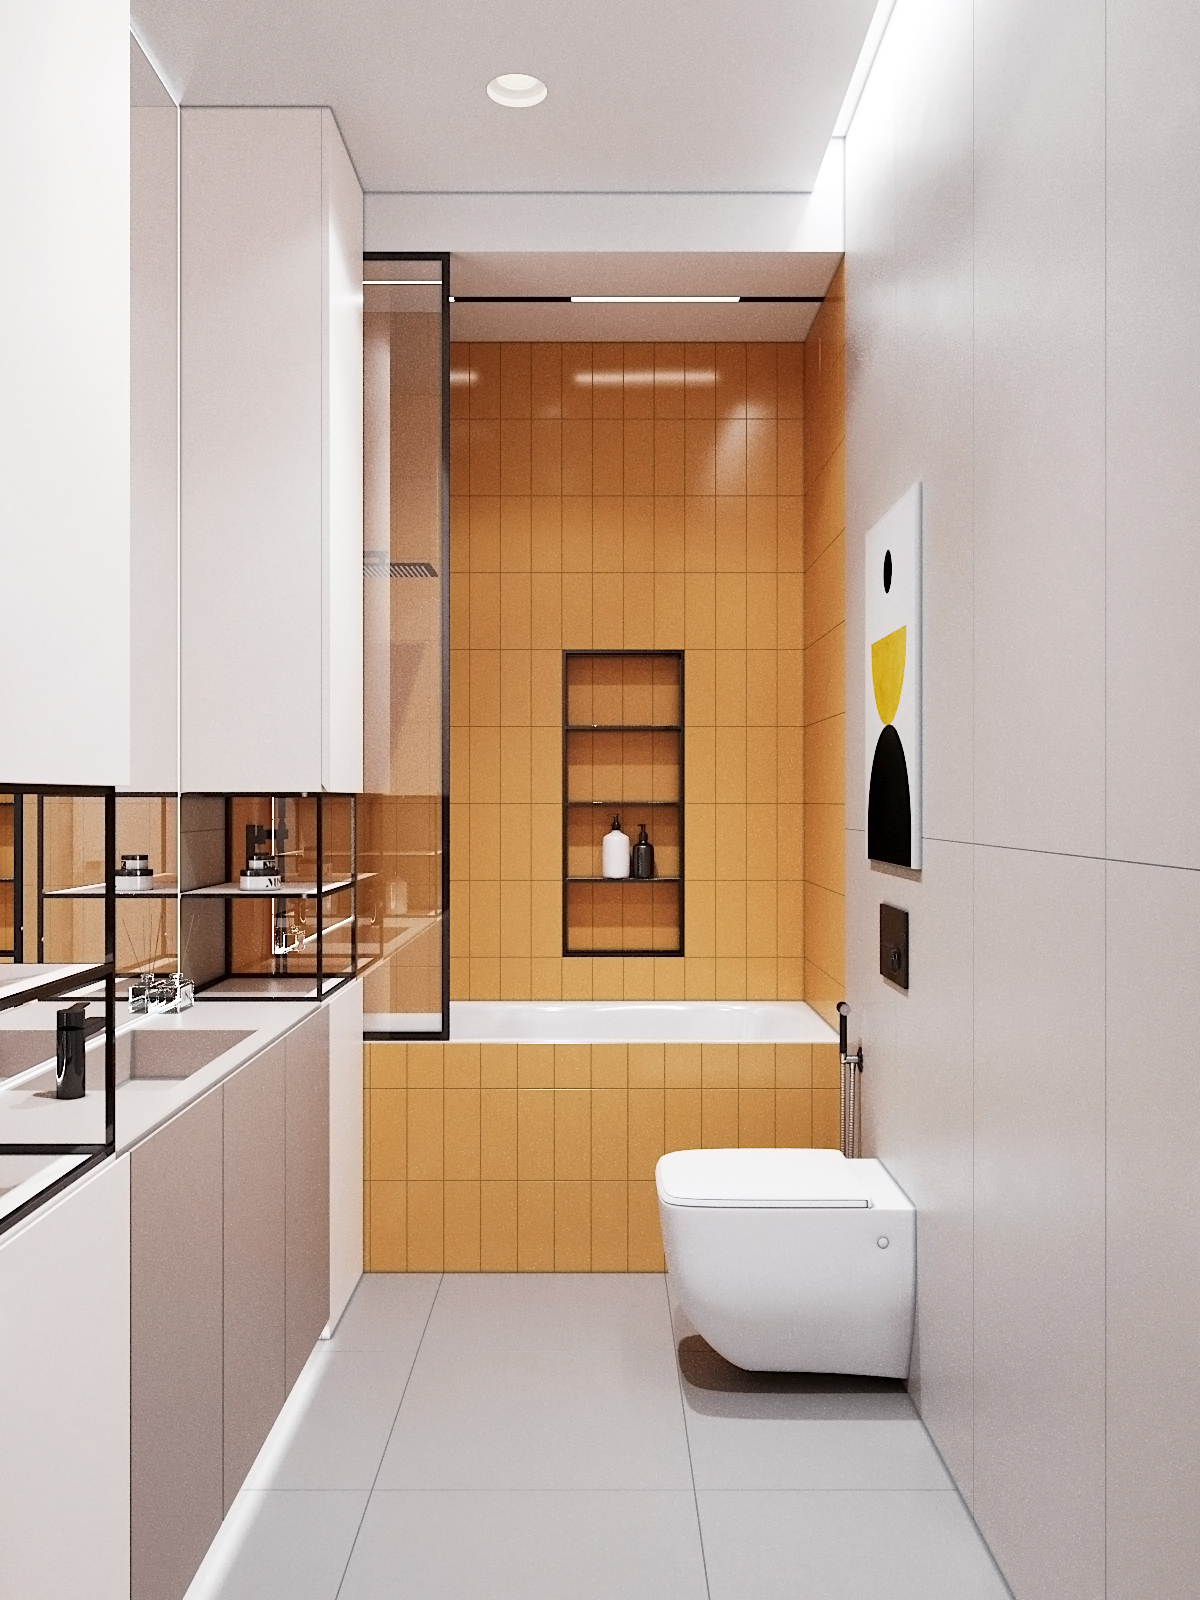 https://avantum-remont.ru/wp-content/uploads/2019/12/Bathroom_Interactive-LightMix_View01.jpg